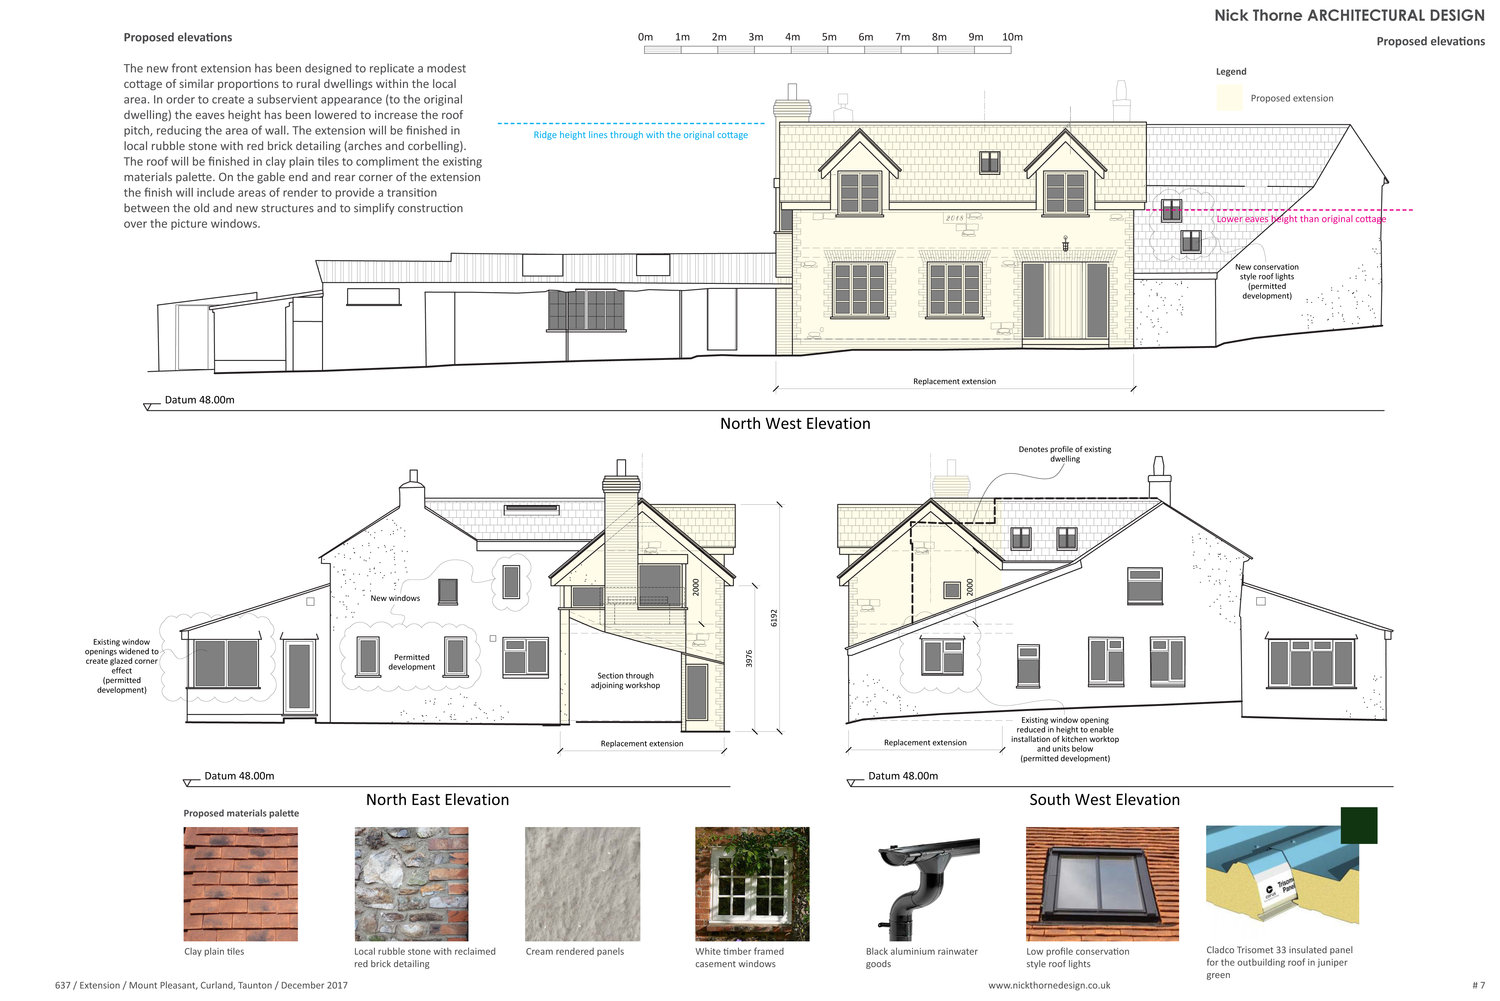 Planning approval granted for a two storey front extension in an ...